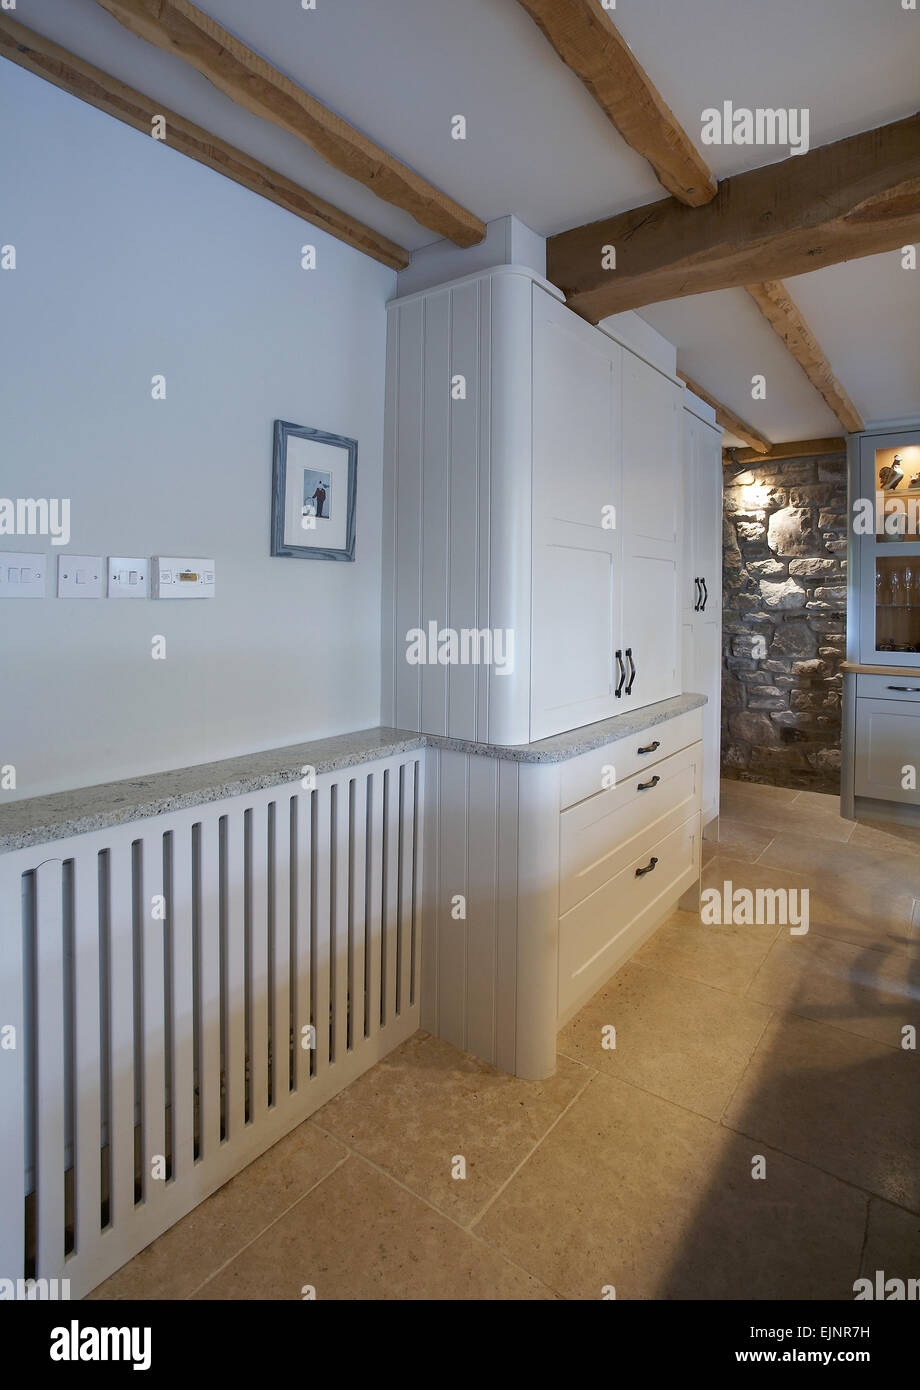 Radiator Cover Home Stock Photos & Radiator Cover Home Stock Images ...